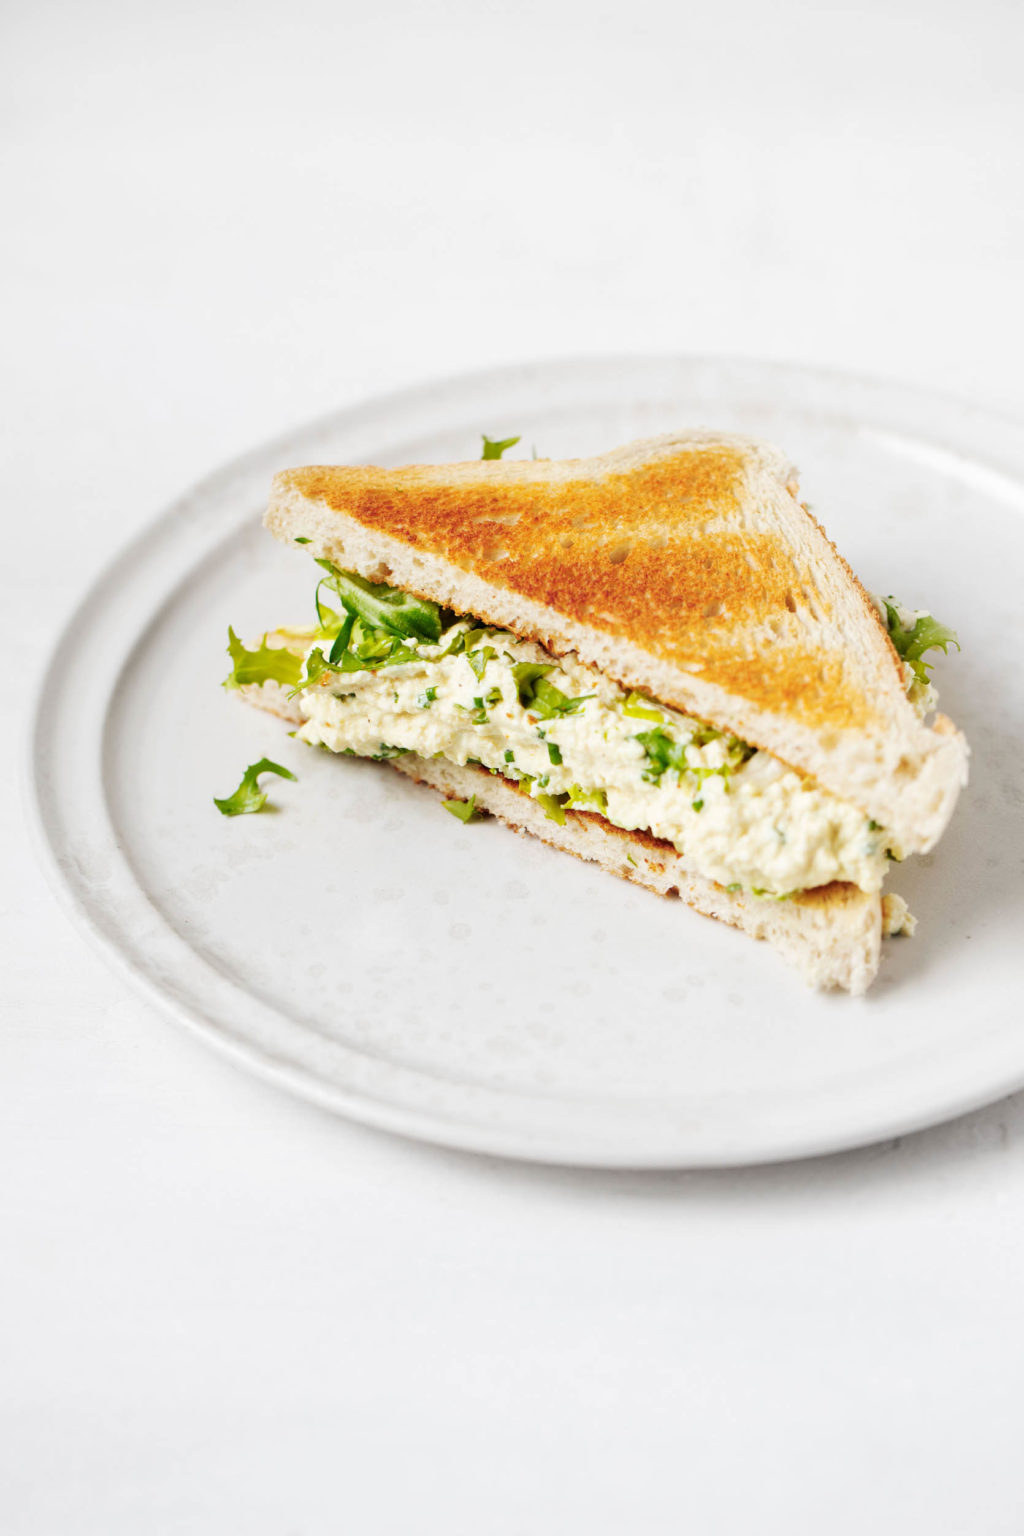 An angled photograph of a white plate that has been topped with half of a tofu egg salad sandwich and fresh greens.